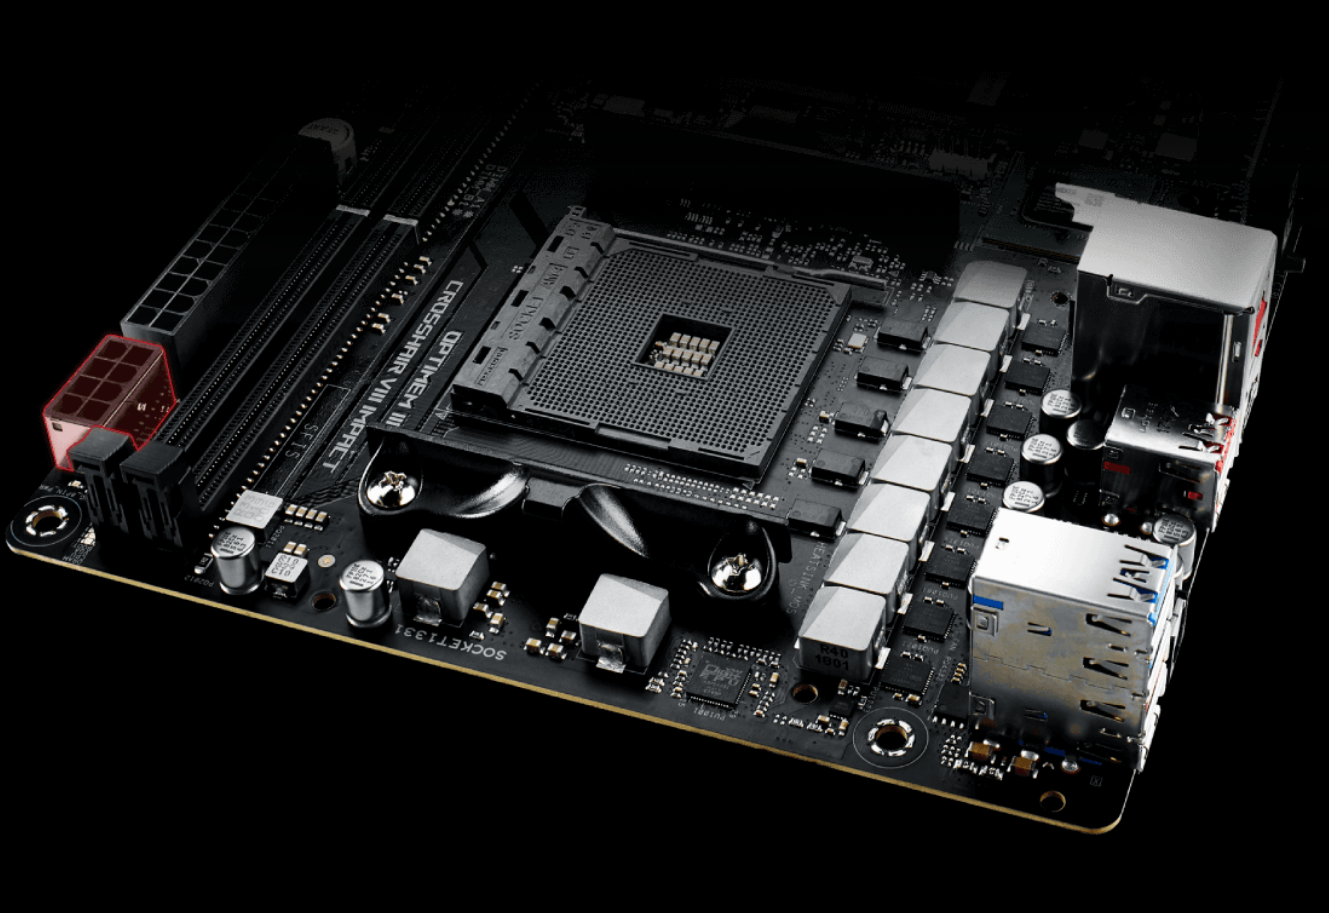 Amd Budget Aimed A520 Matx Mini Itx Motherboards From Asrock Leak Out Designed For Budget Ryzen 3000 Ryzen 4000 Cpus